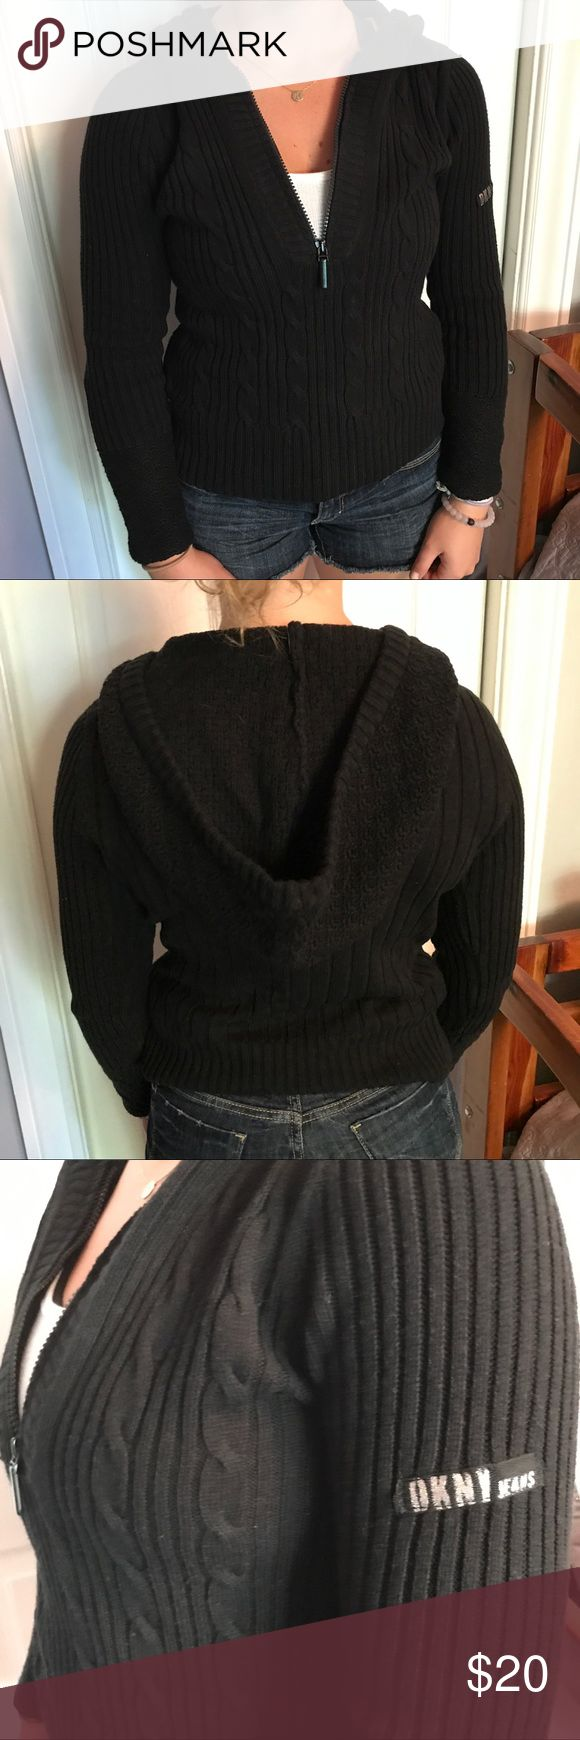 PETITE Sweater • DKNY Jeans Petite sweater! Make an offer! DKNY Sweaters